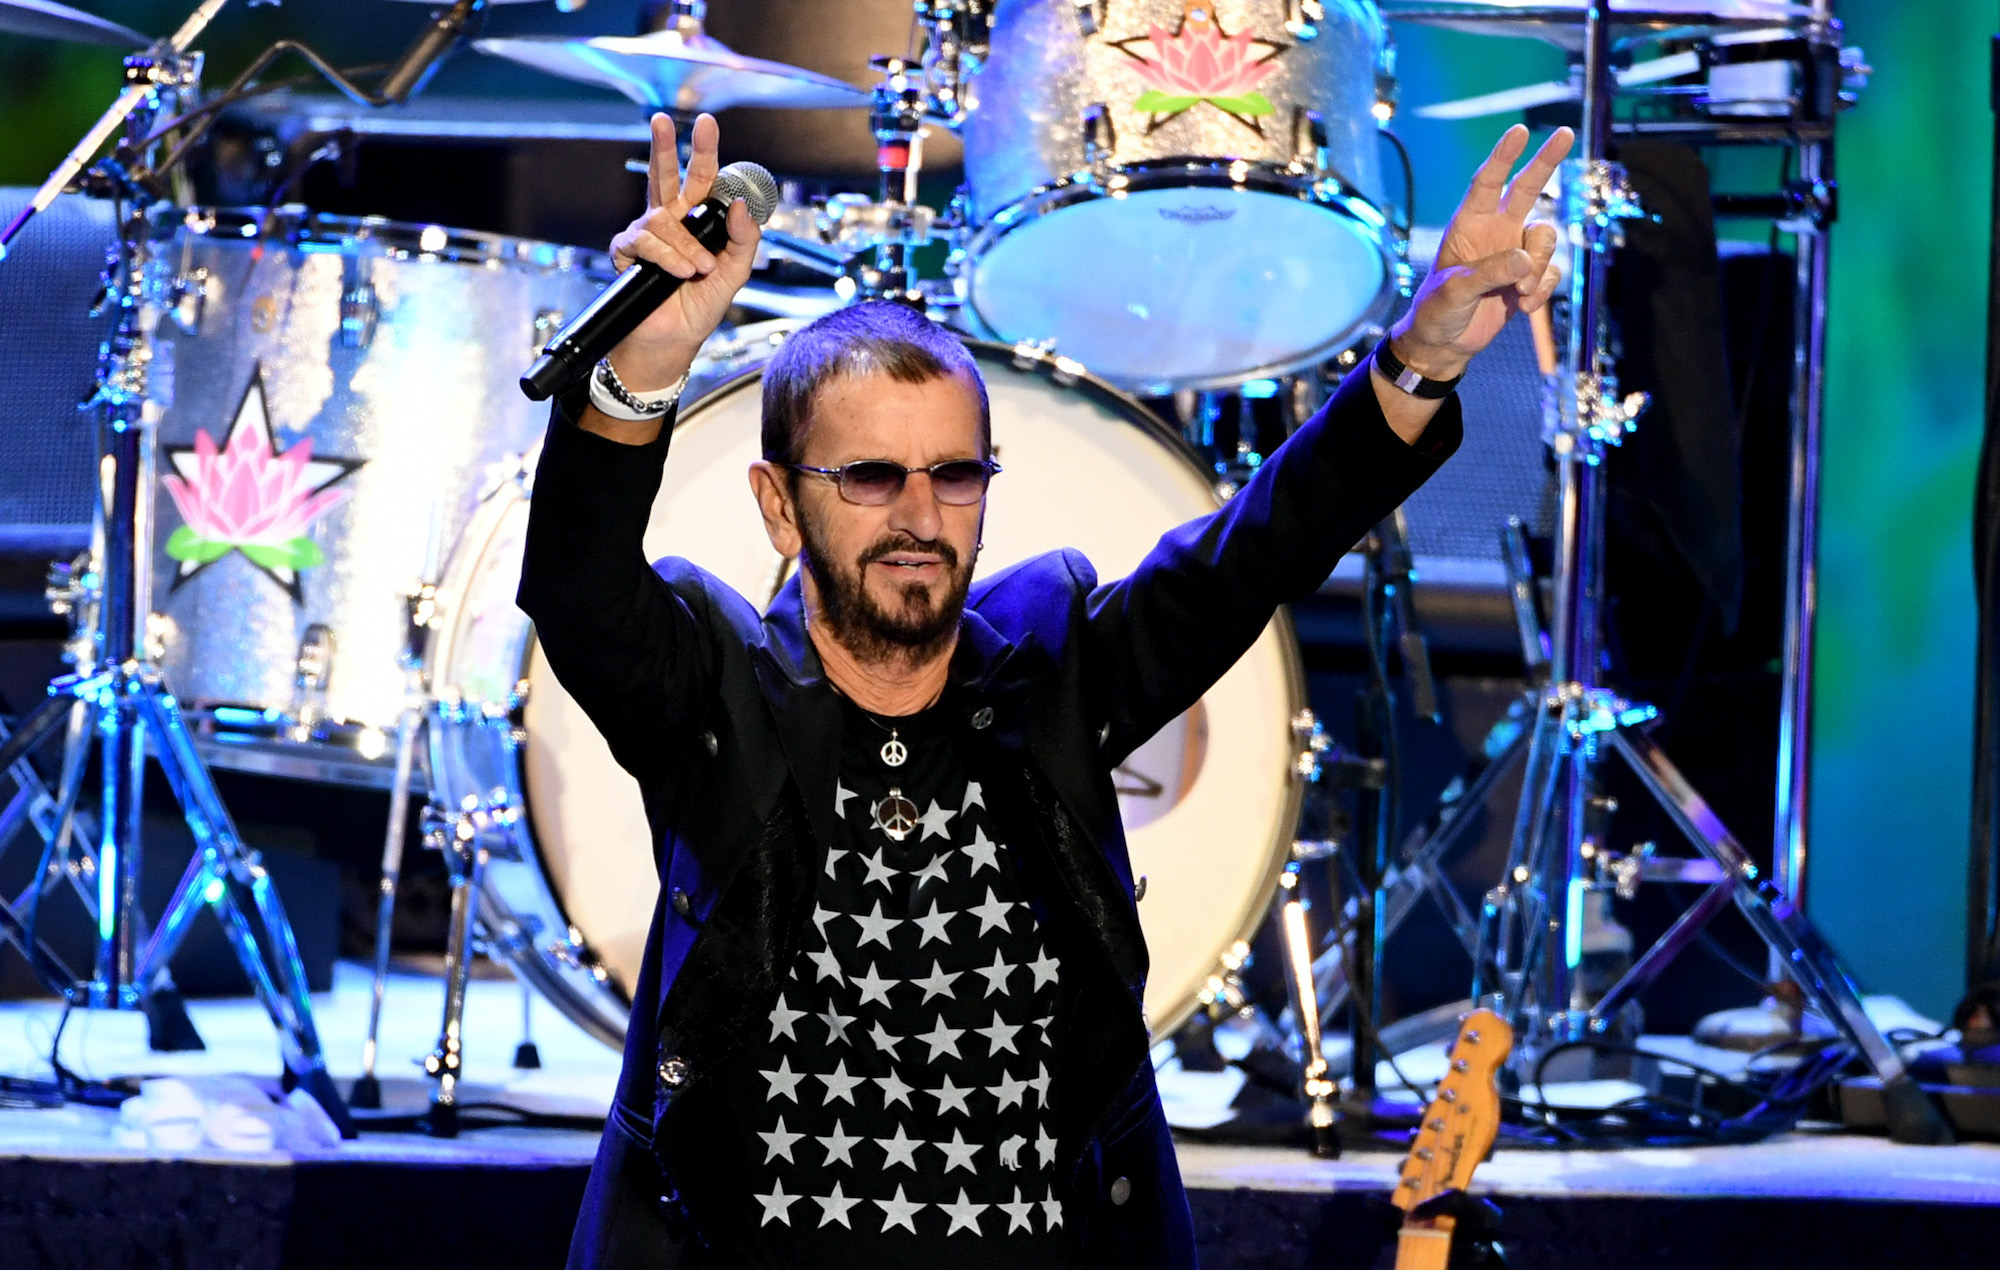 Ringo Starr, The Beatles